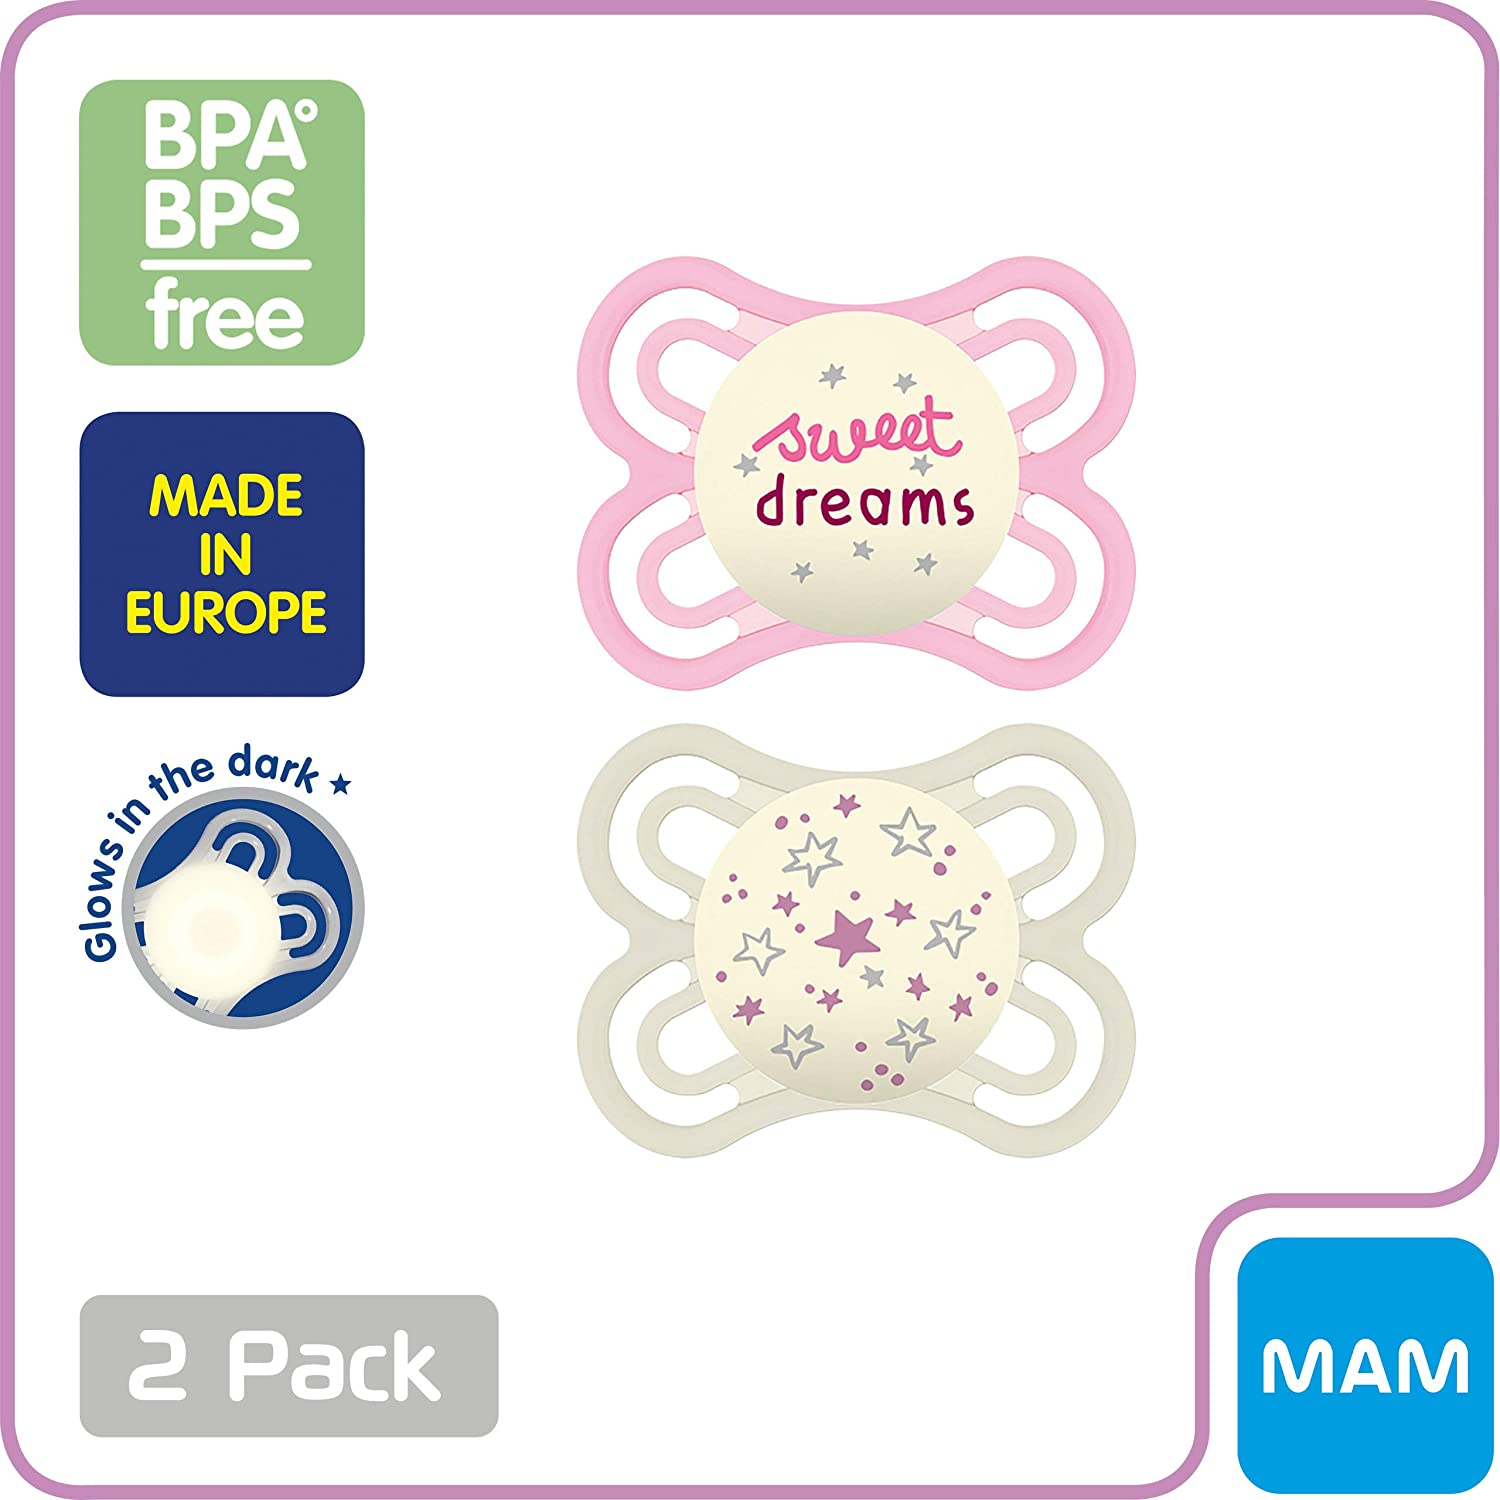 Baby Boy Pacifier MAM Pacifiers 0-6 Months Best Pacifier for Breastfed Babies 2 pack Glow in the Dark Pacifiers MAM Perfect Night Pacifiers